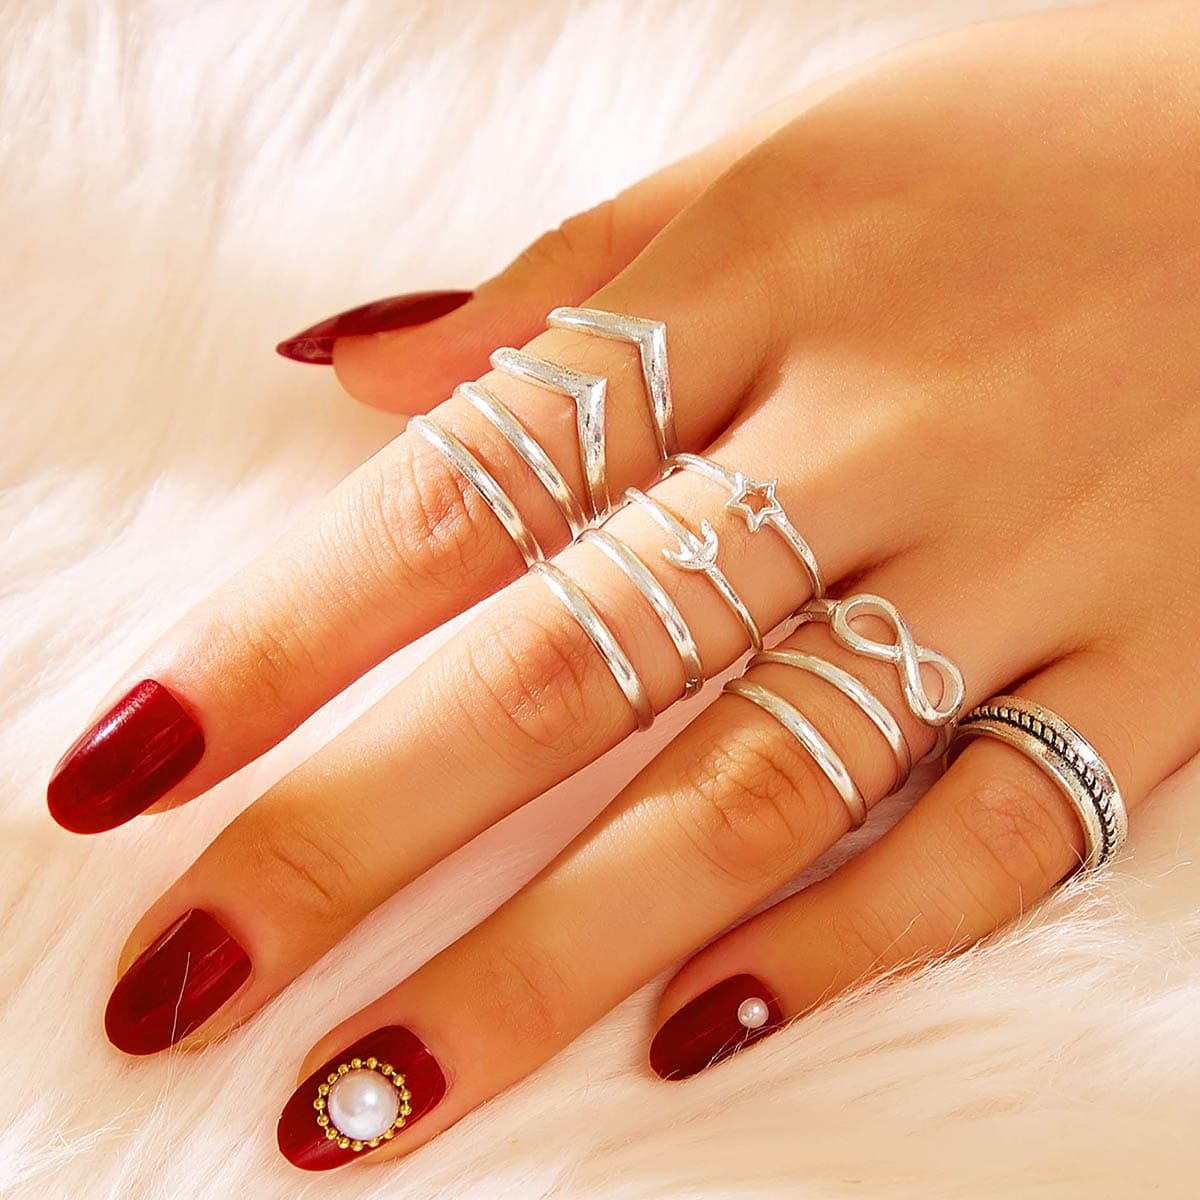 Infinity & Star Decor Ring 12pcs in Silver by ROMWE on GOOFASH